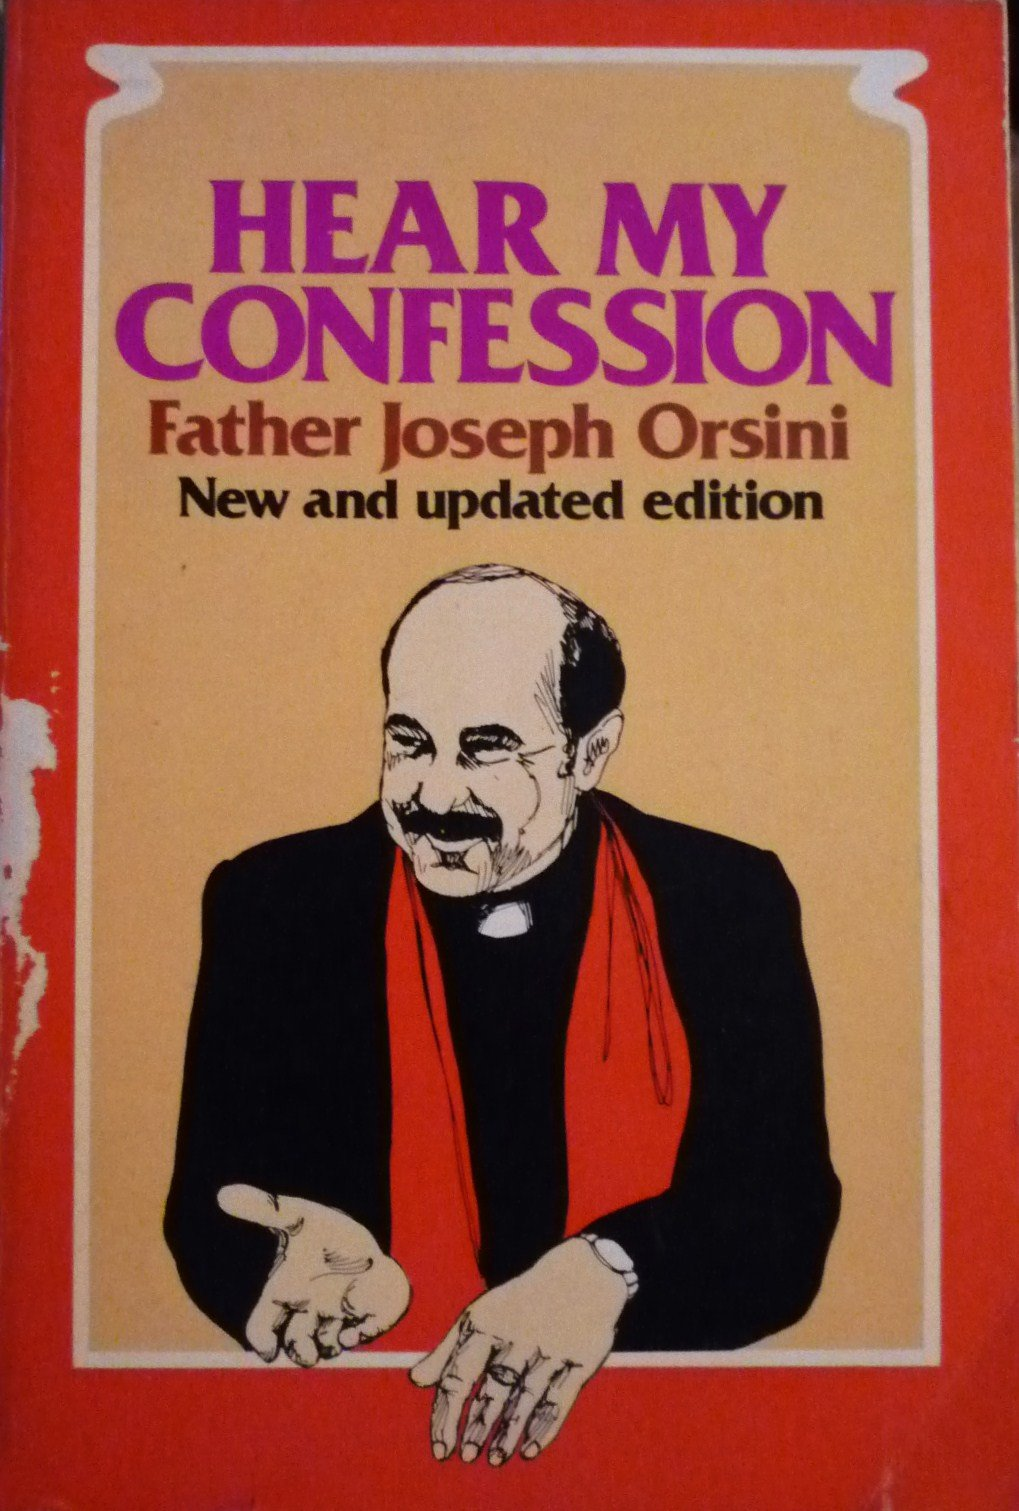 Hear My Confession: Father Joseph Orsini: 9780882702315: Amazon.com: Books